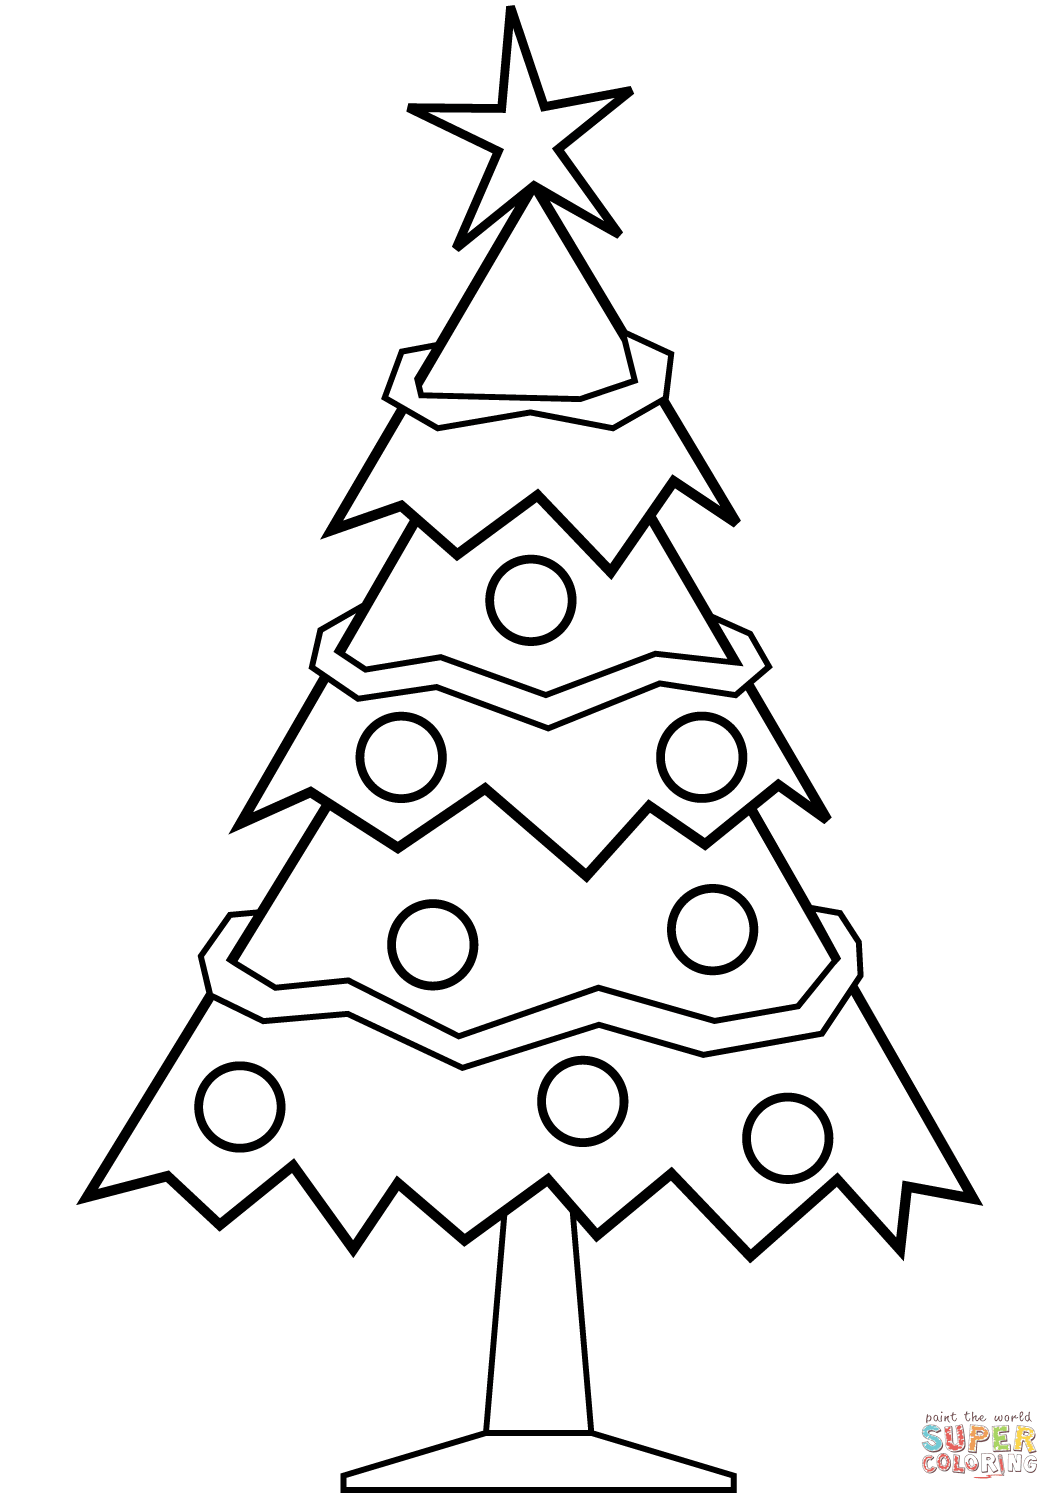 1060x1500 Free Easy Coloring Pages Snail Gianfredanet Christmas